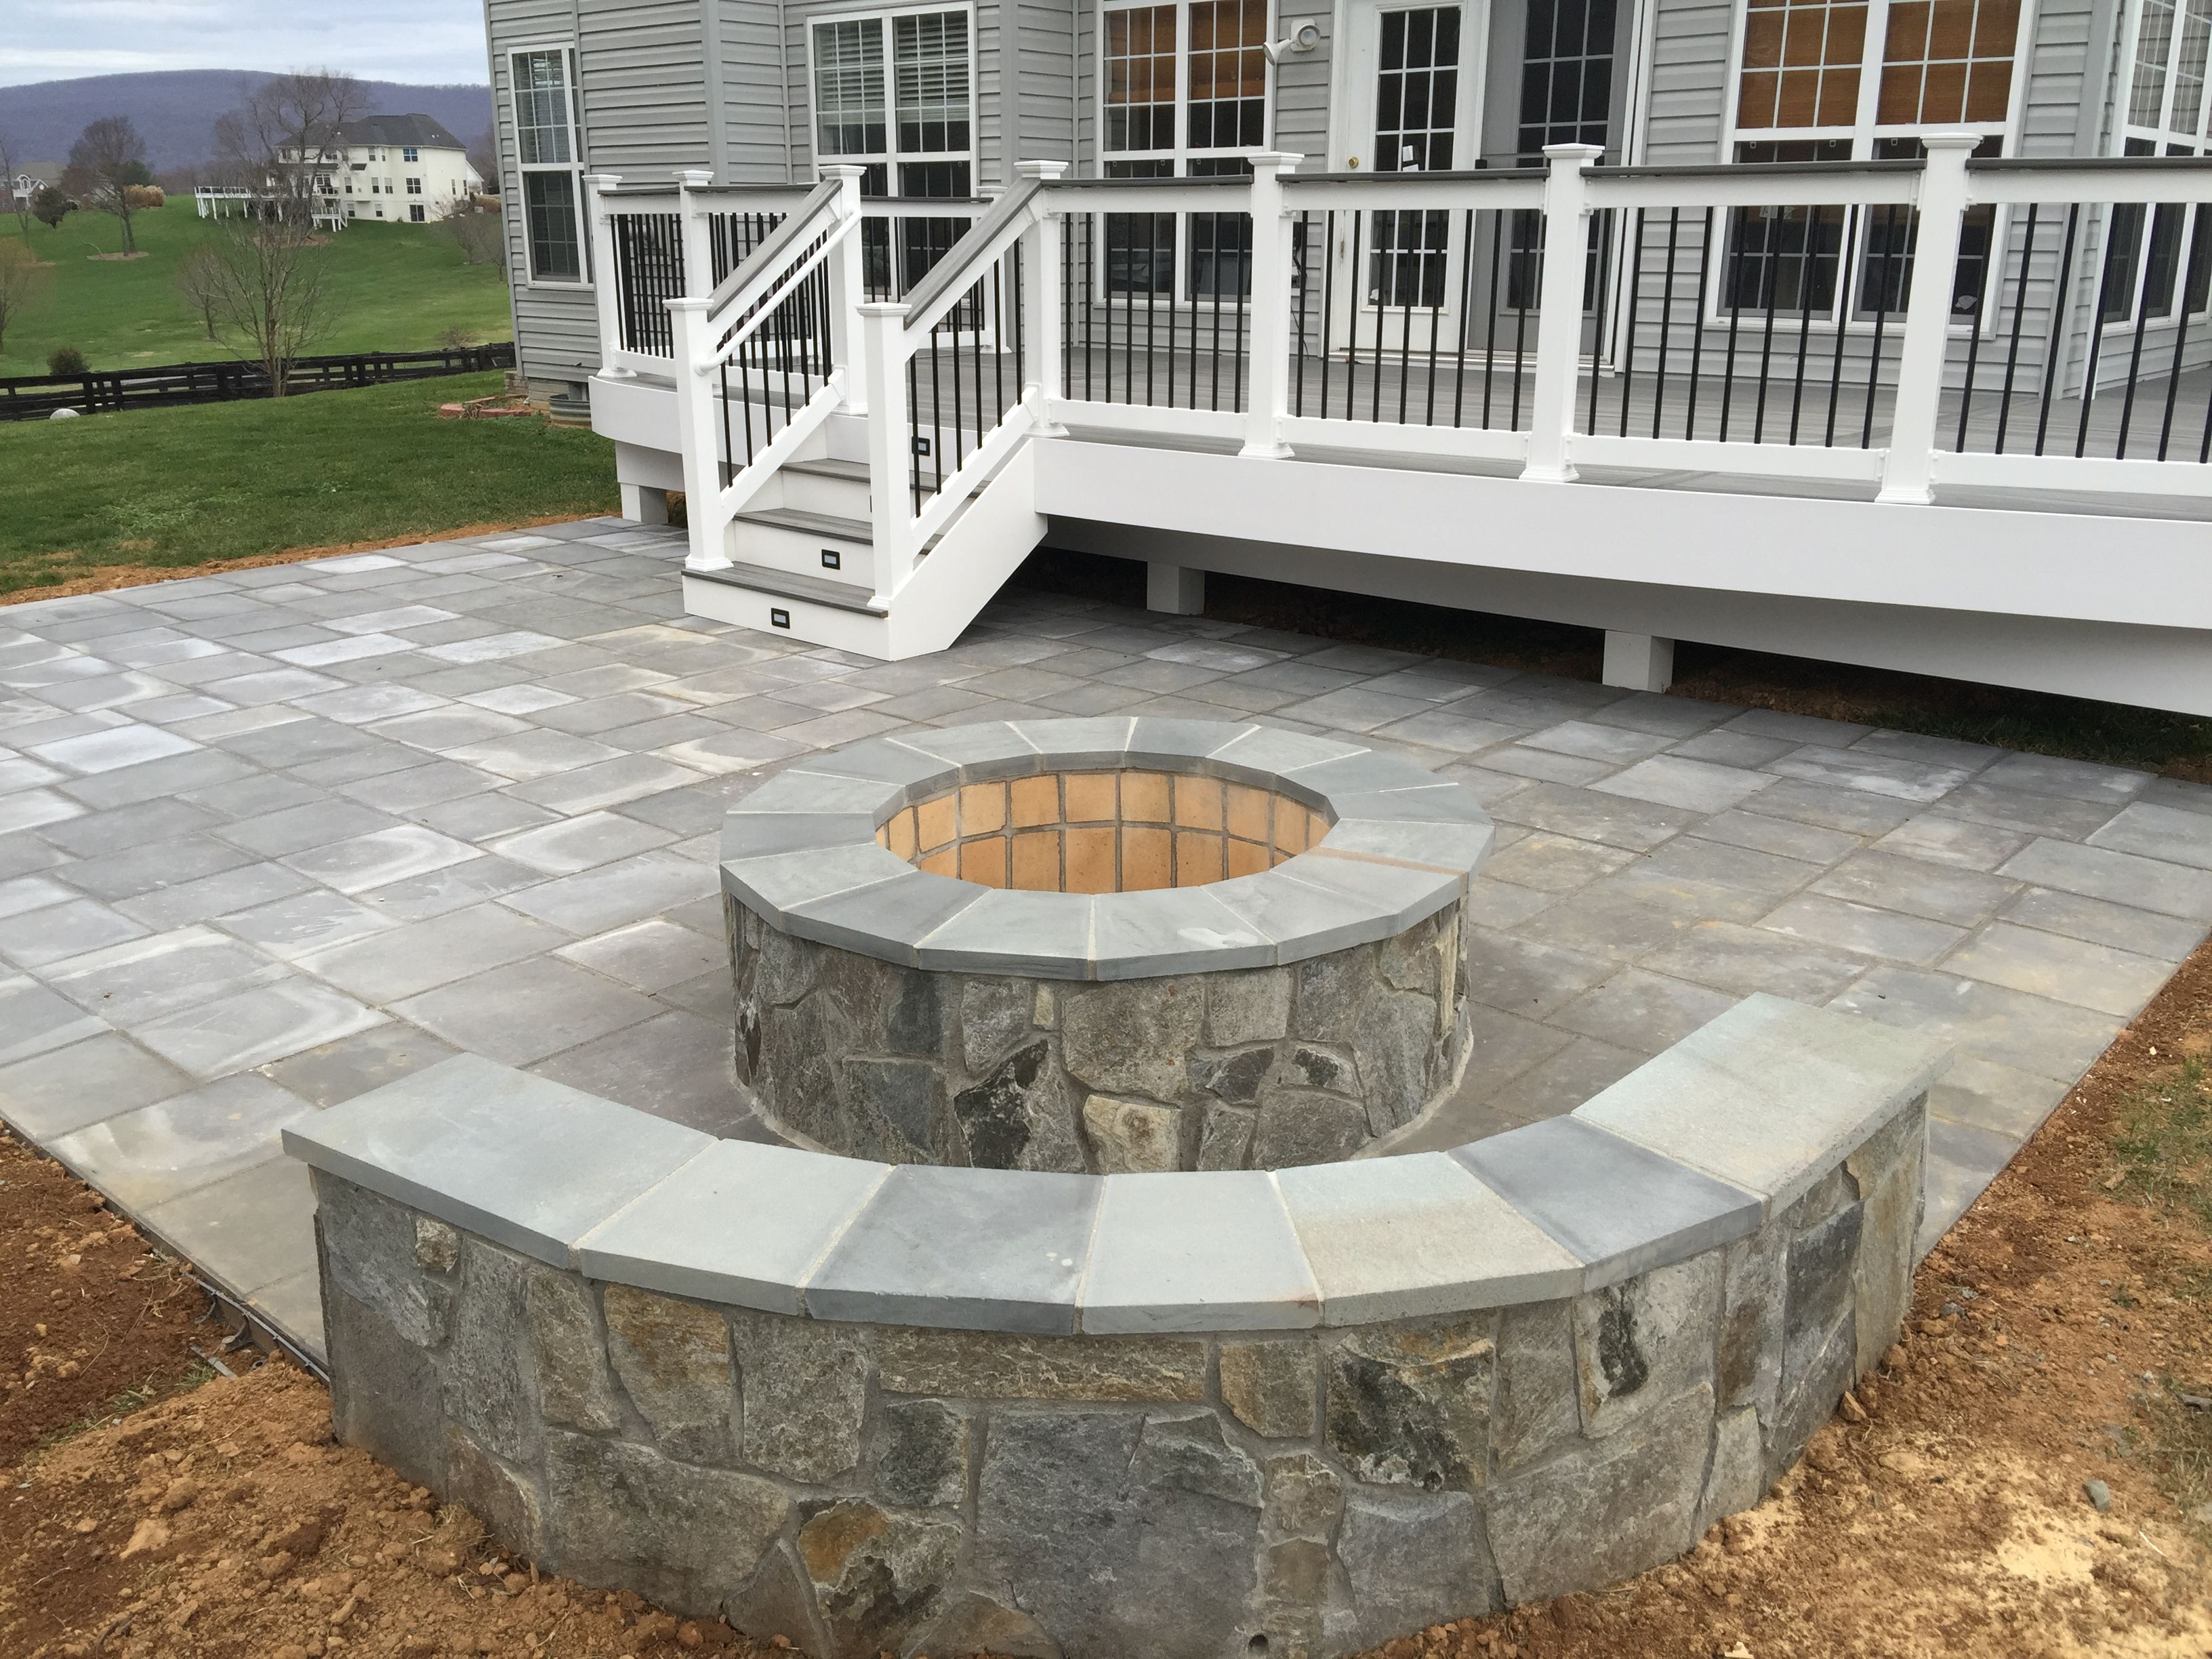 A beautiful paver patio with stone seating walls and a for Small deck seating ideas